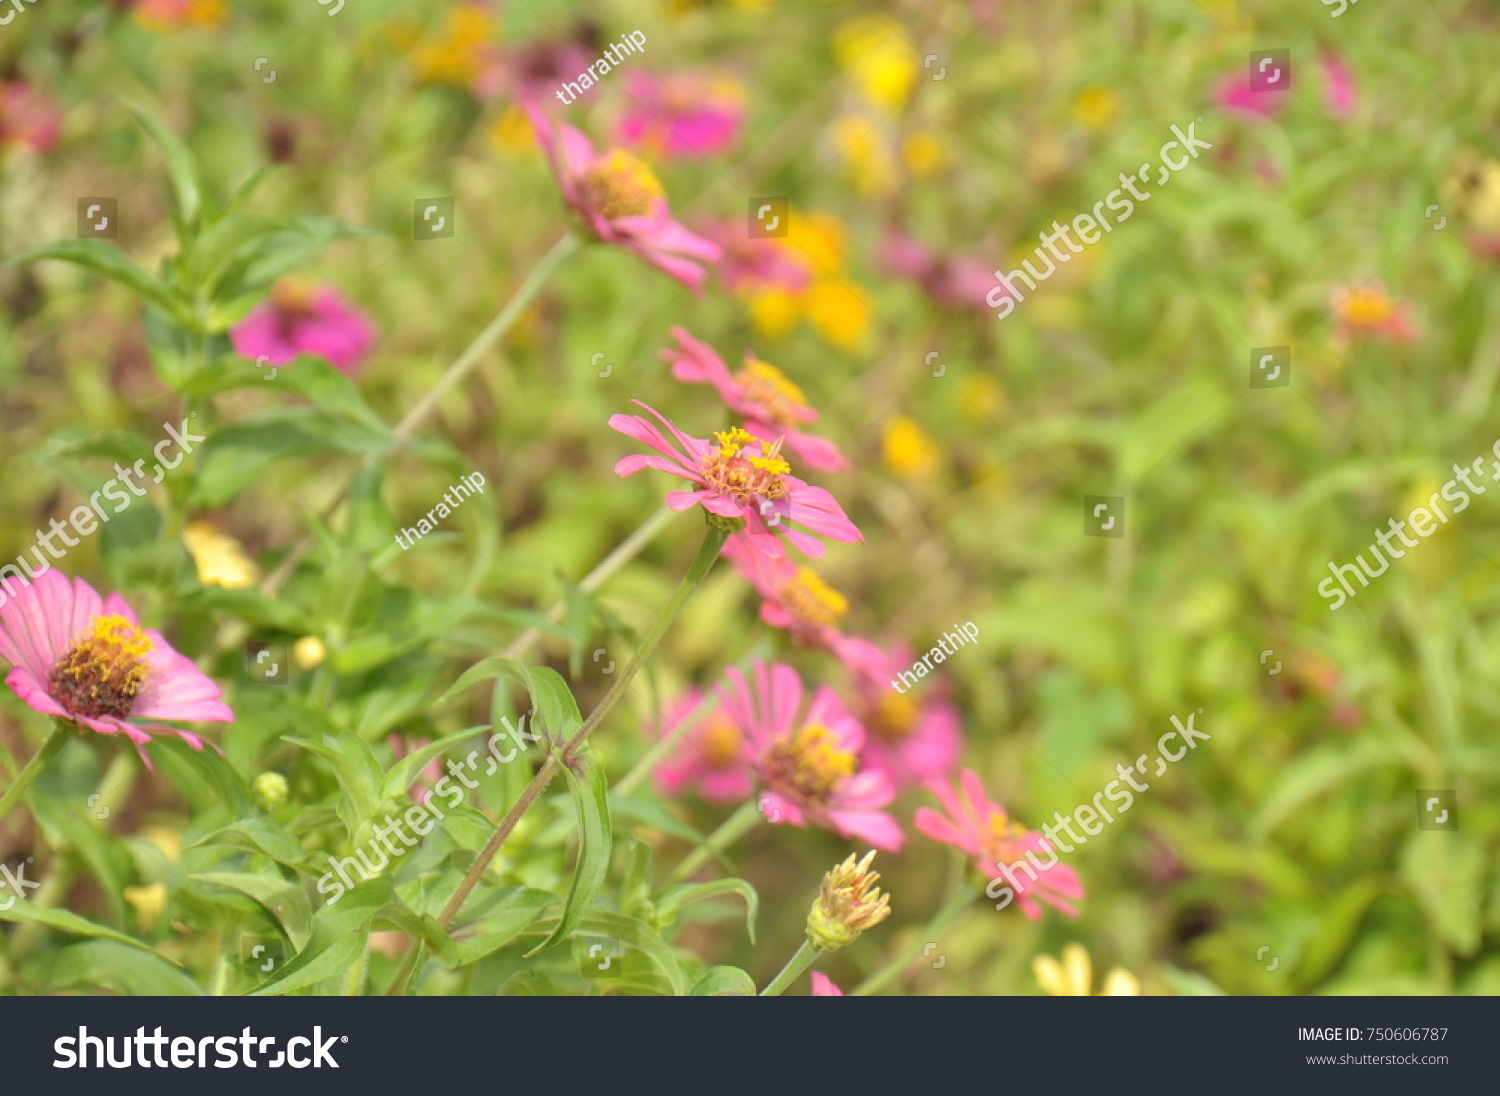 Grass and grass flowers background beautiful flowers and grass in id 750606787 izmirmasajfo